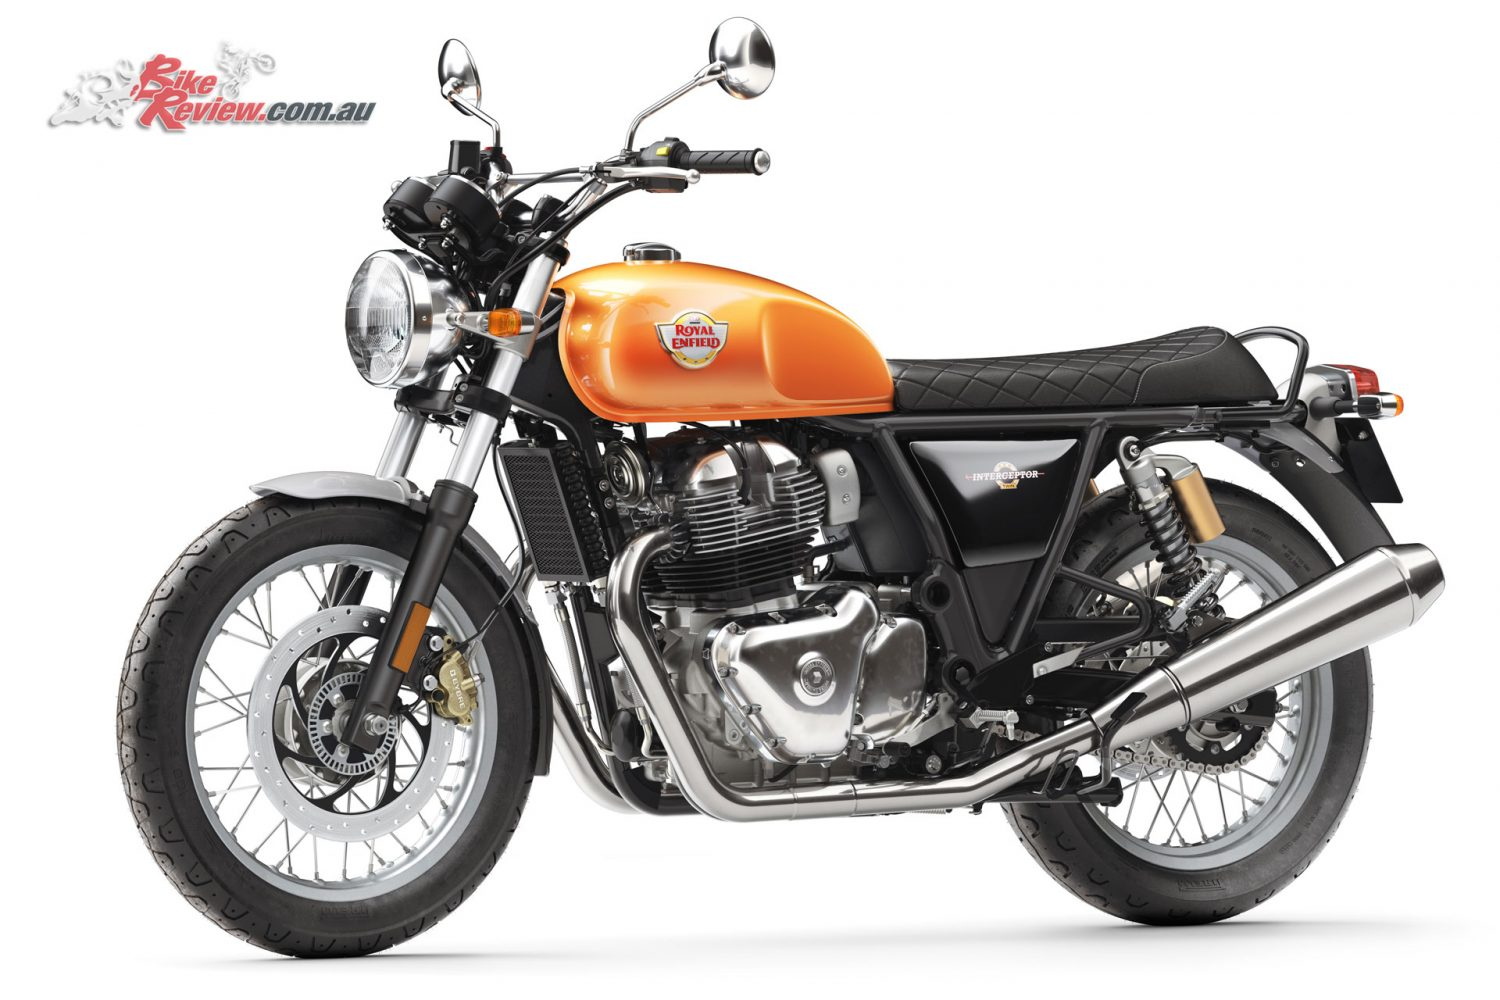 Honda Riding Gear >> Royal Enfield unveil two new 650s at EICMA - Bike Review